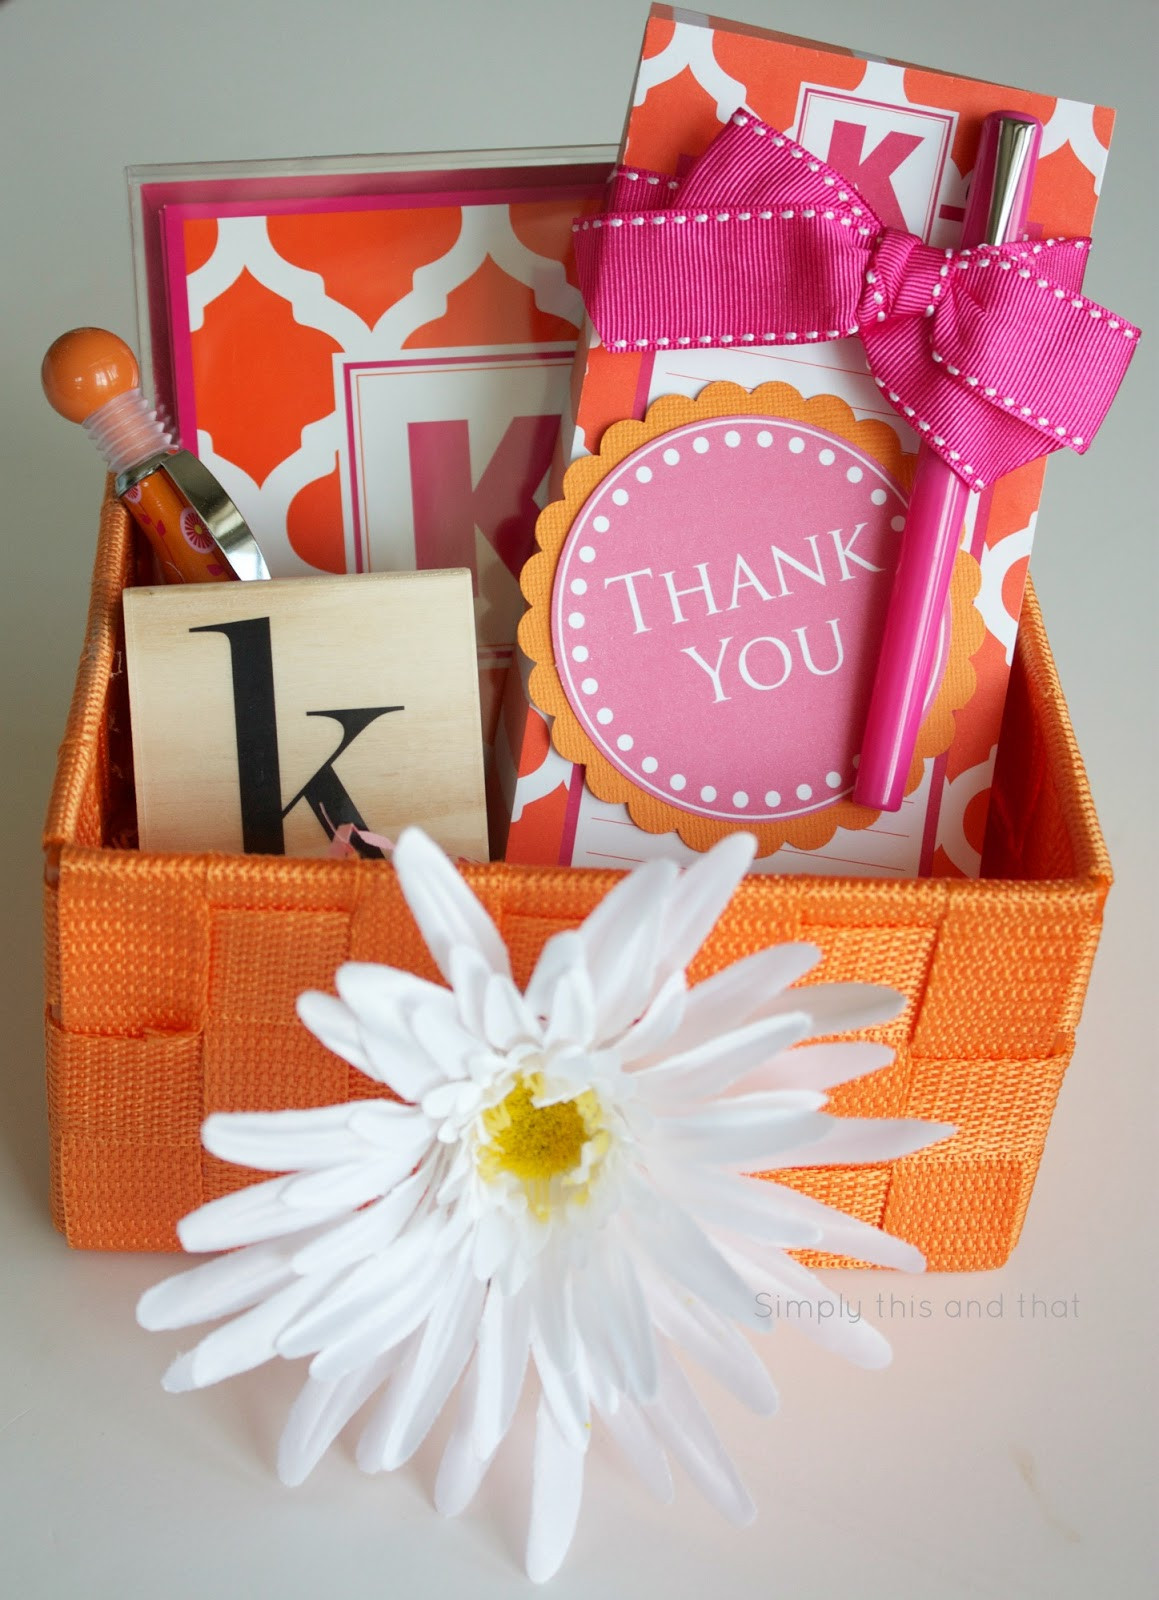 Thank You Gift Basket Ideas  Simply This and that Thank You Basket Printable Tag